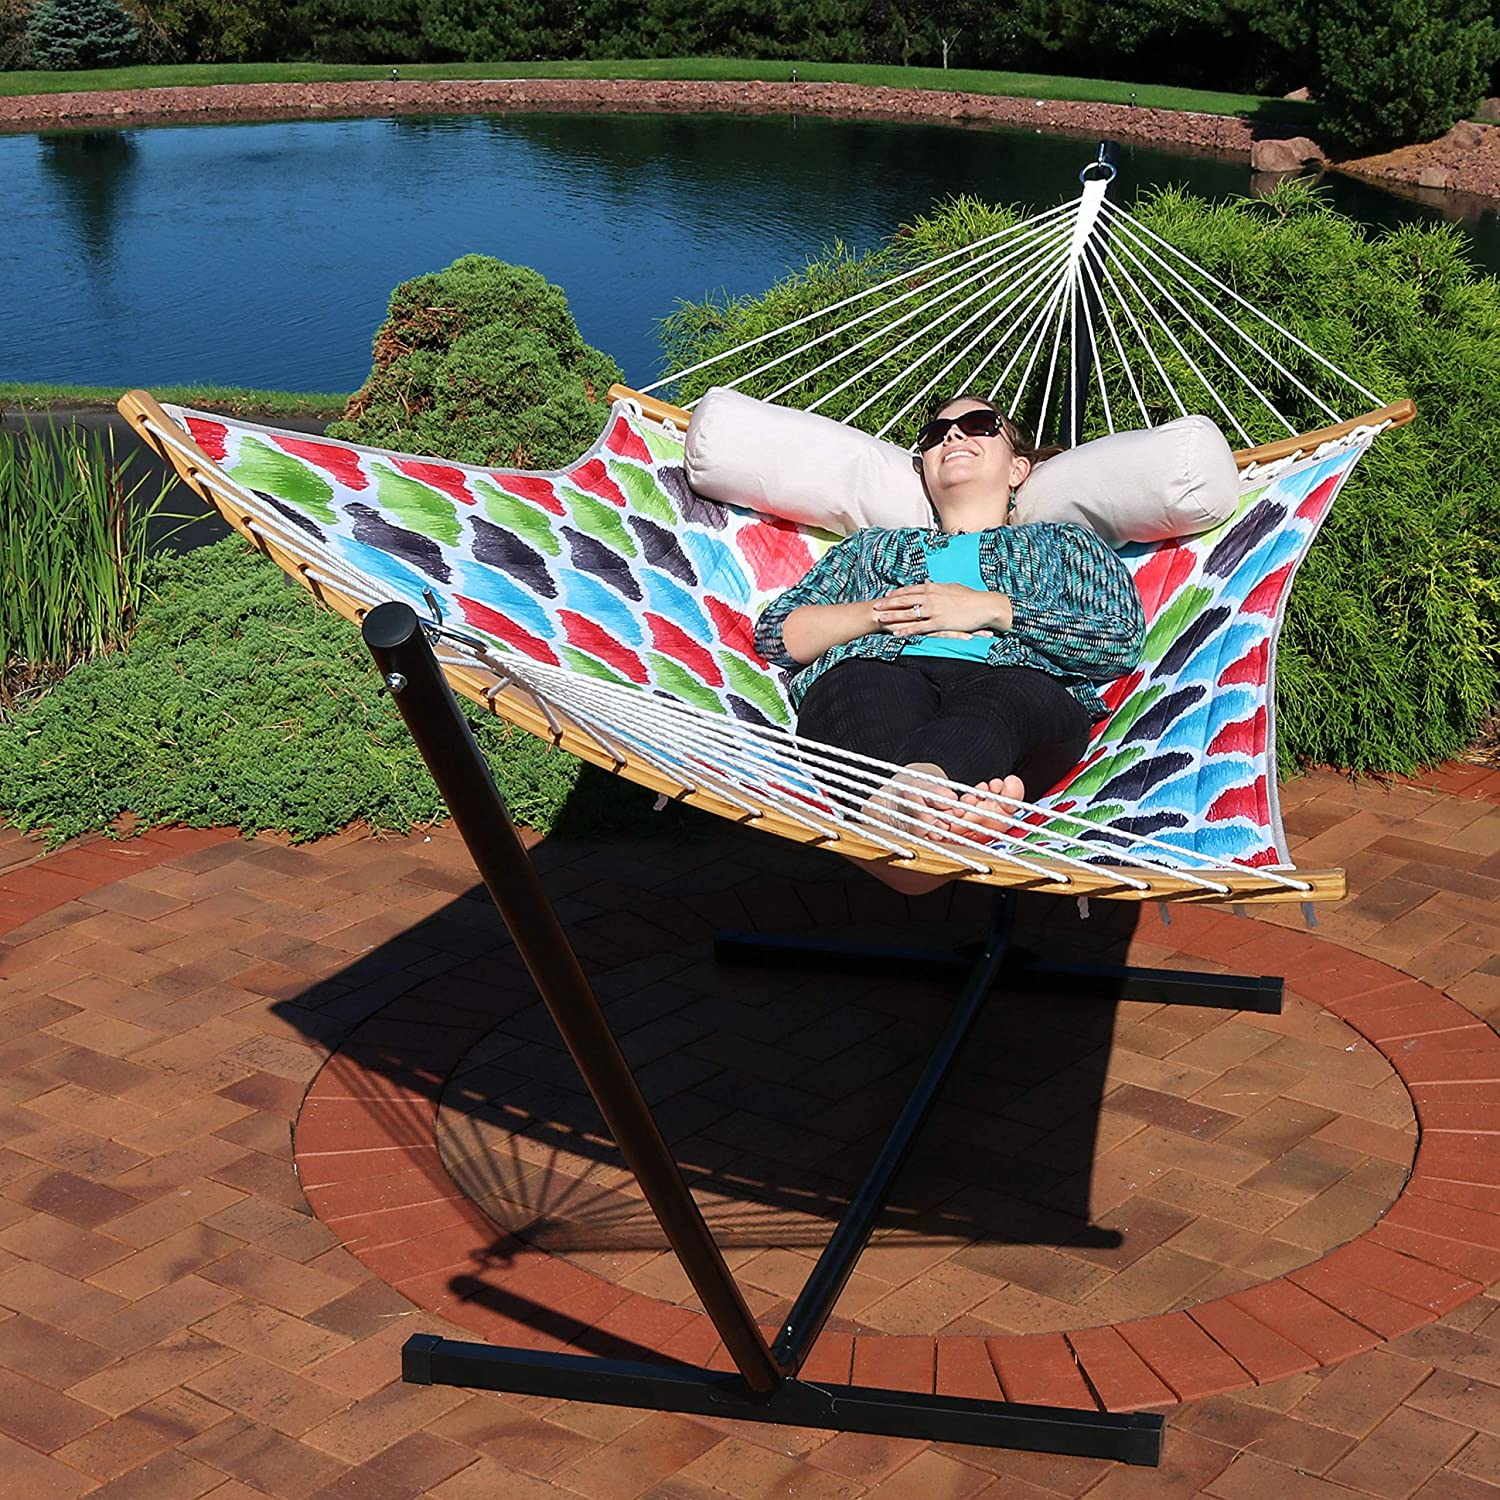 Quilted 2 Person Hammock With Curved Bamboo Spreader Bars, Heavy Duty 450 Pound